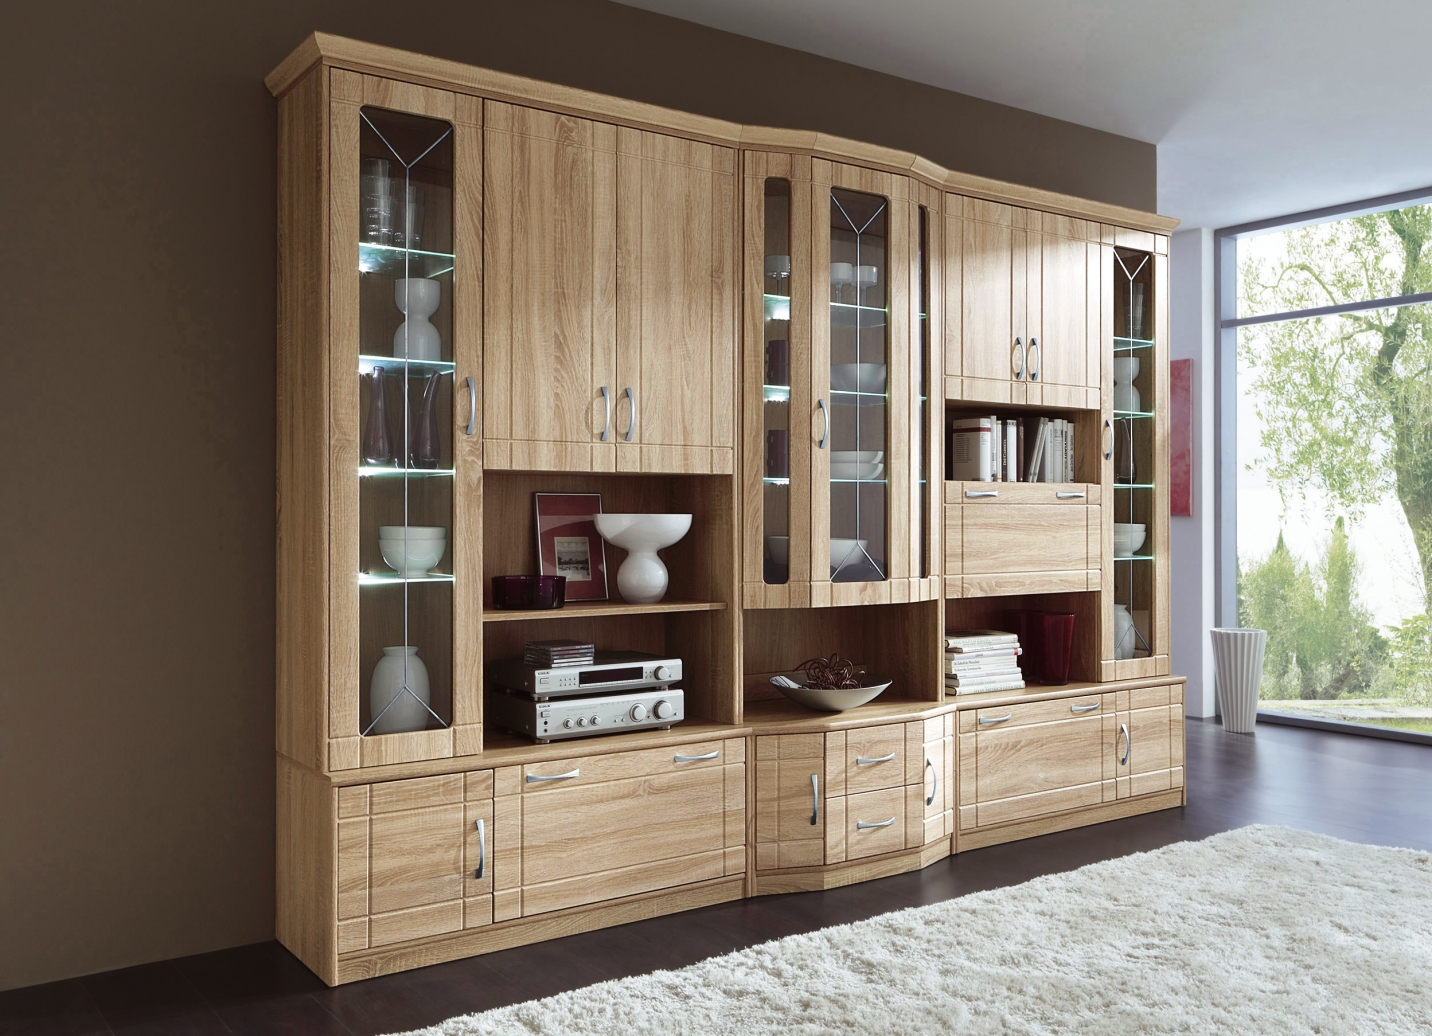 wohnwand wohnzimmer bader. Black Bedroom Furniture Sets. Home Design Ideas